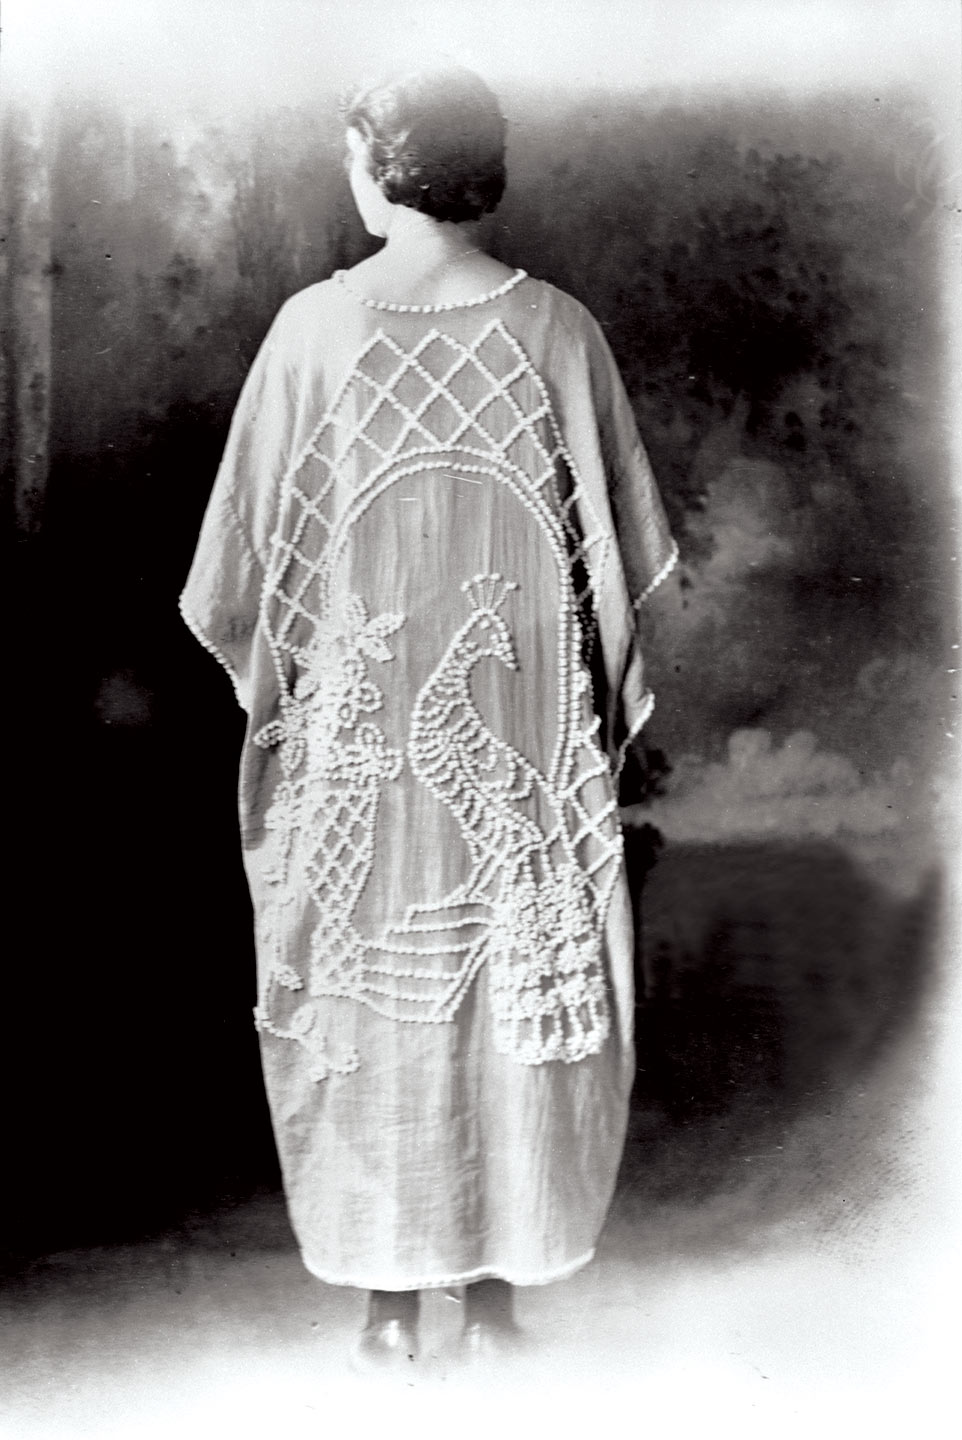 MRS. RALPH HANEY wearing a candlewick kimono with a peacock design, circa 1920. Courtesy of Georgia Archives, Vanishing Georgia Collection, gor466.